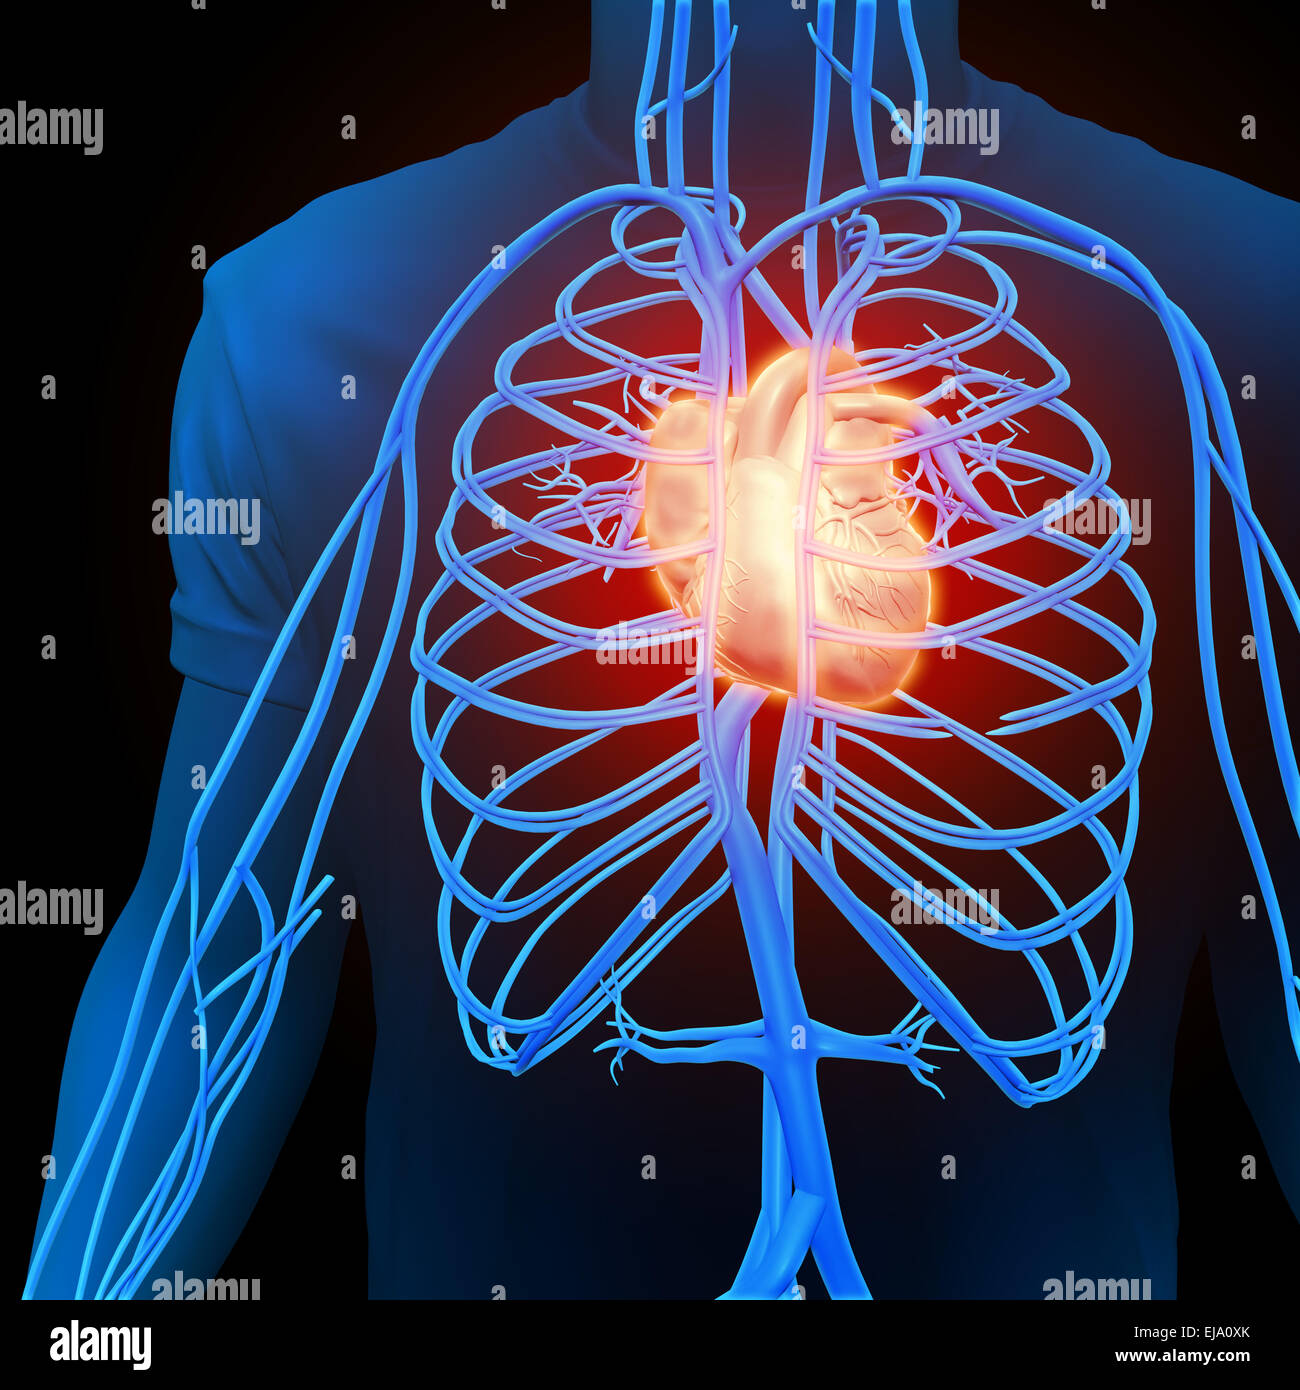 Human circulatory system - medical illustration Stock Photo